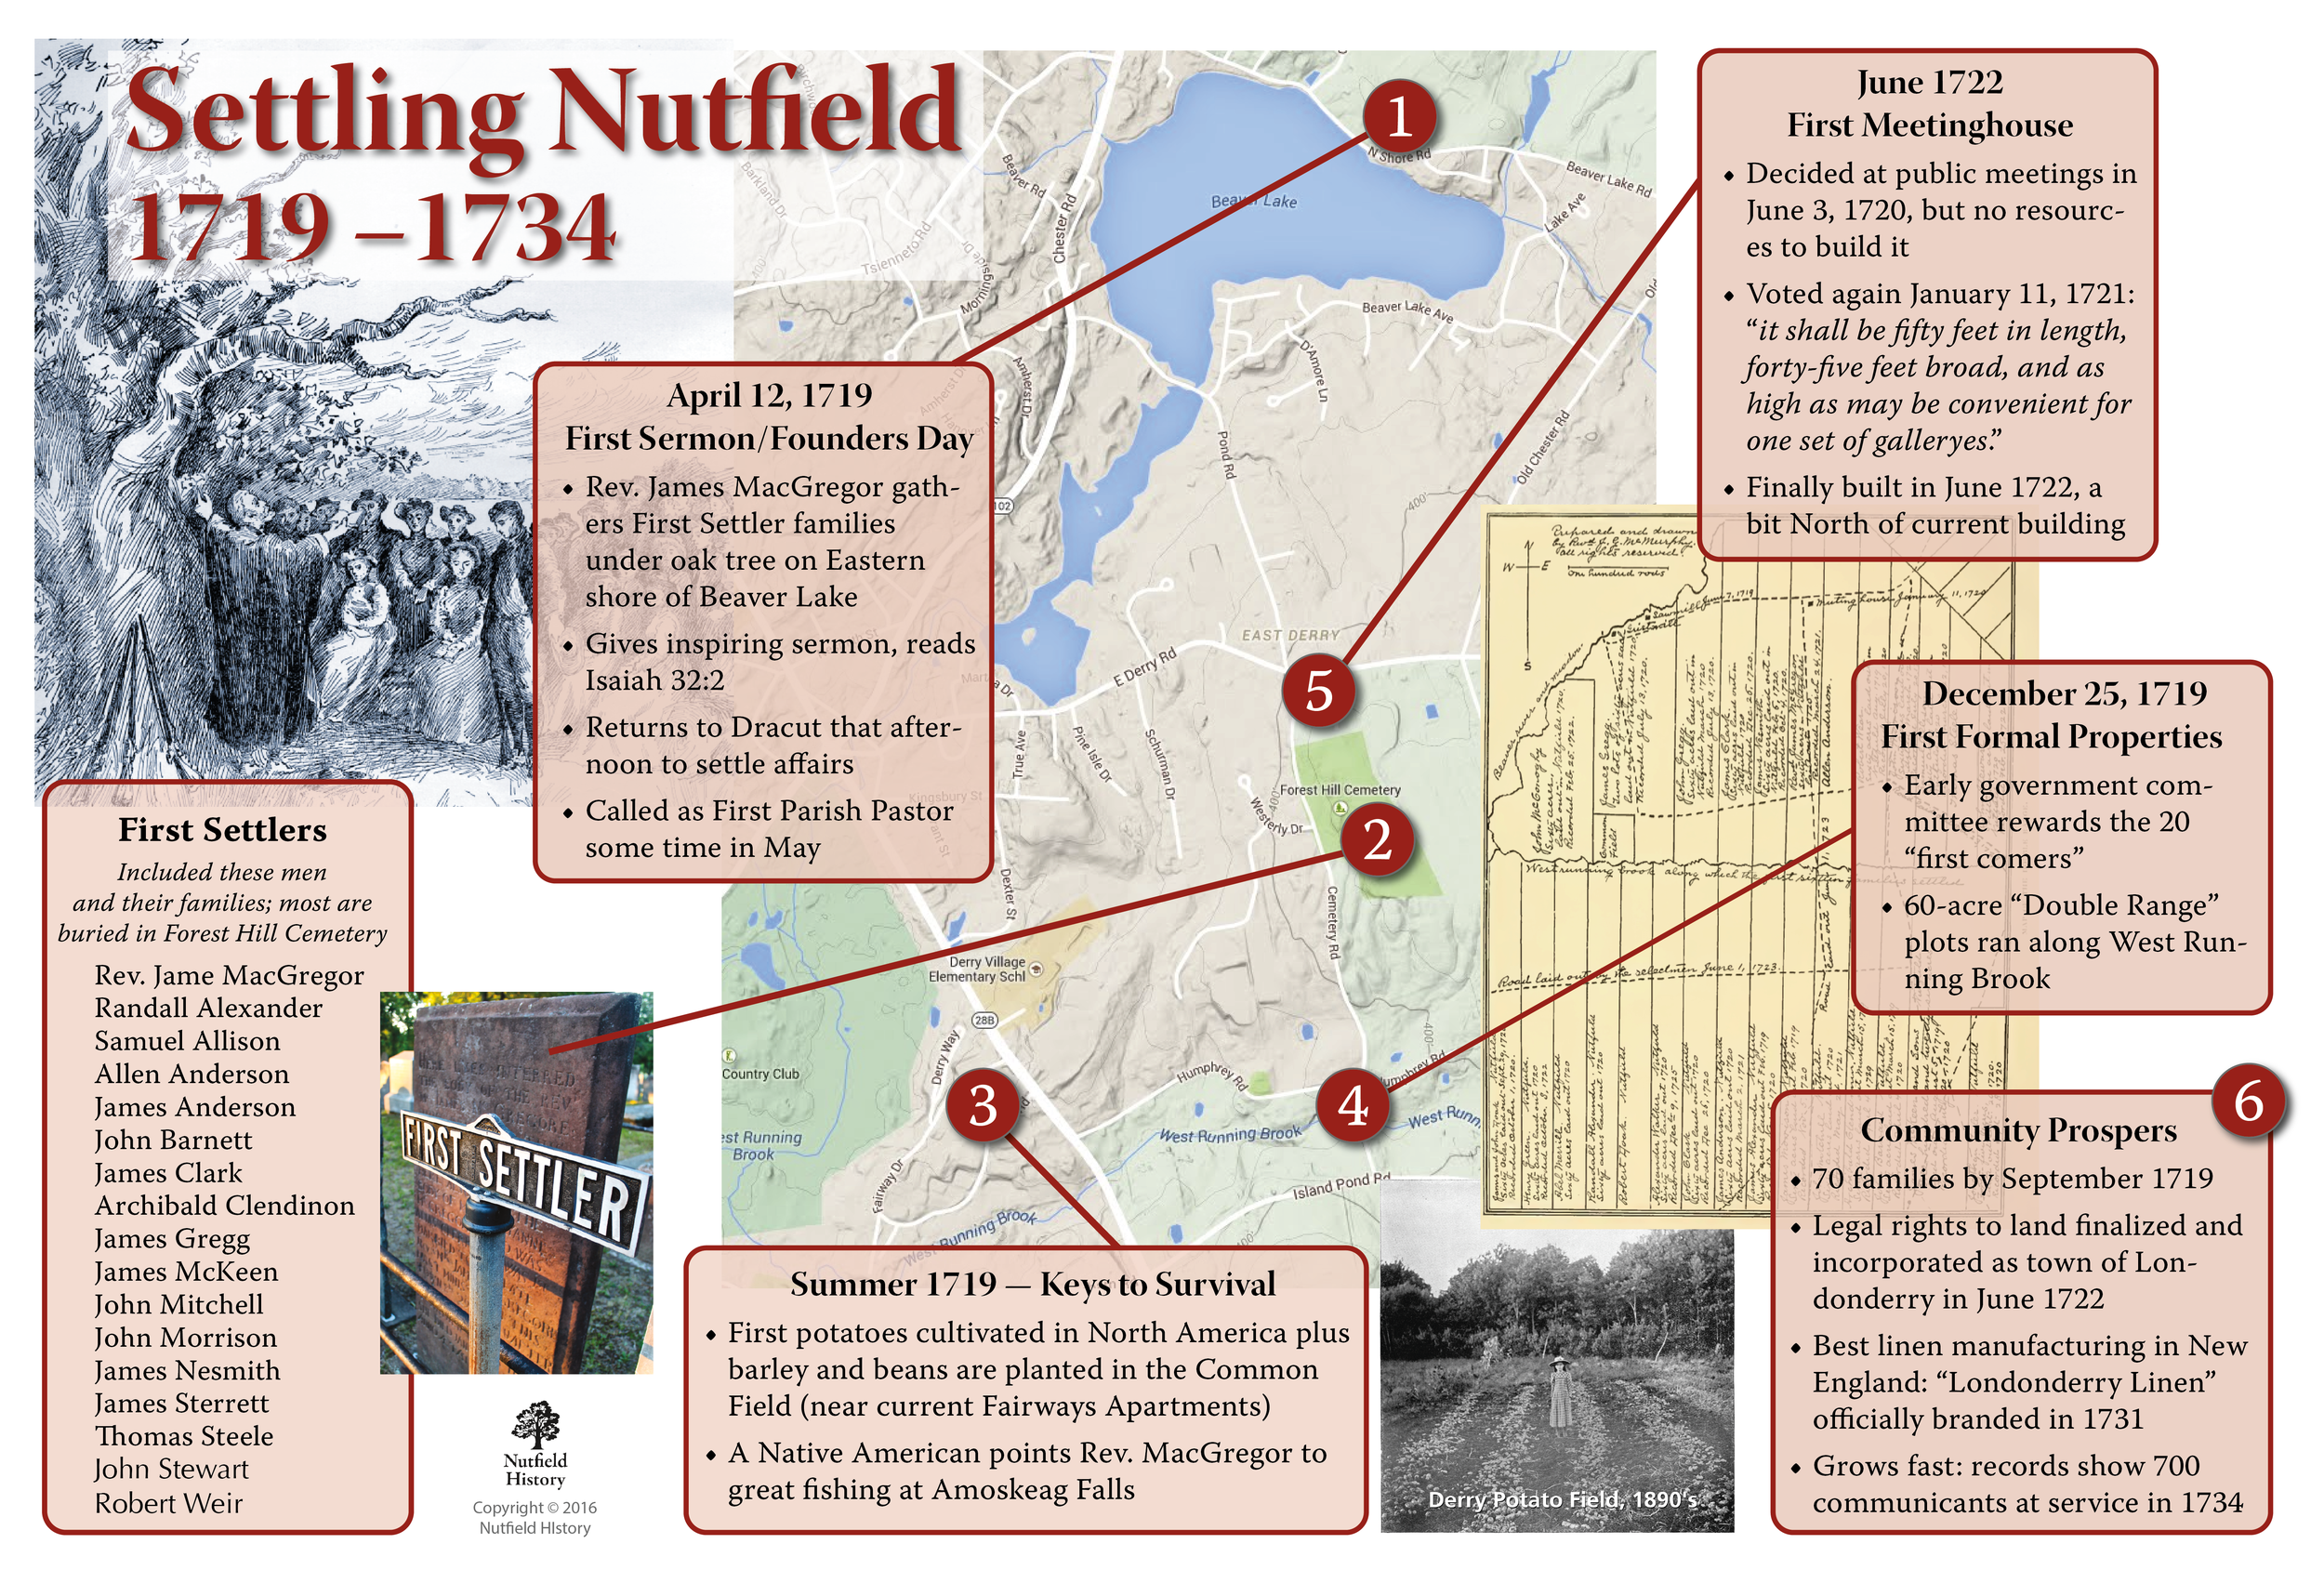 Key points in the first twenty years of settling Nutfield.